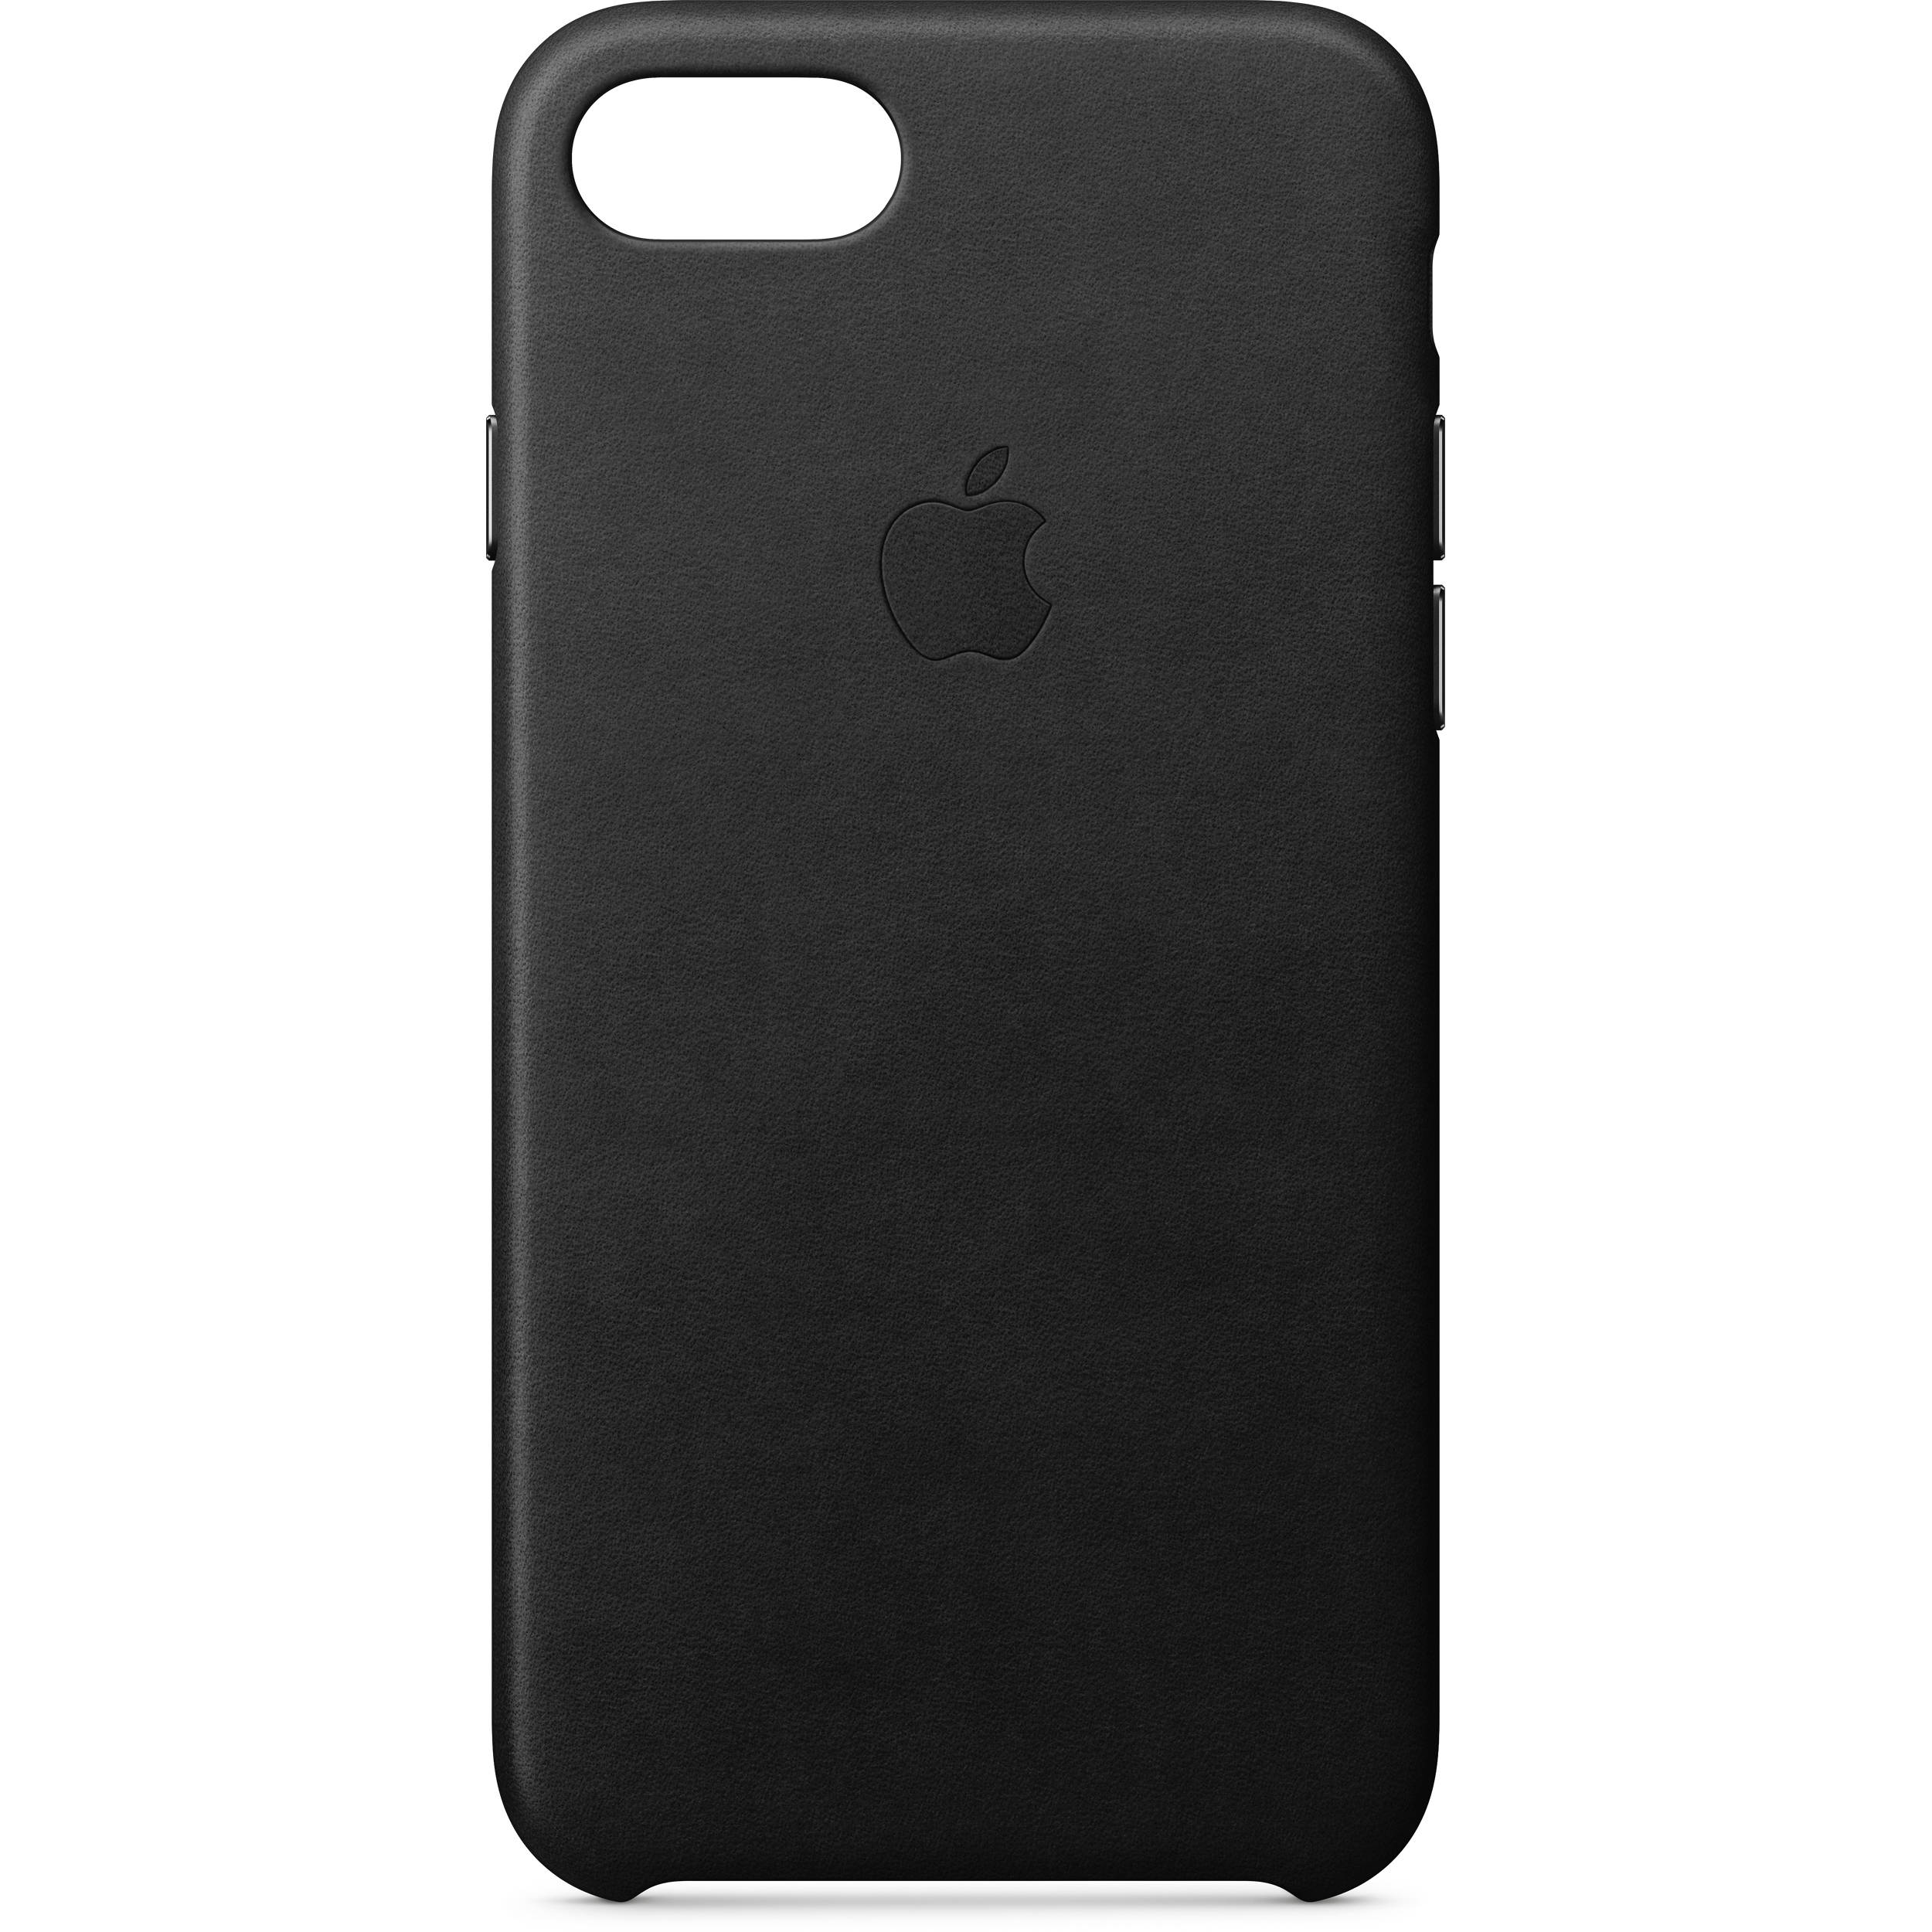 a1470d27e82 Apple iPhone 8 7 Leather Case (Black) MQH92ZM A B H Photo Video